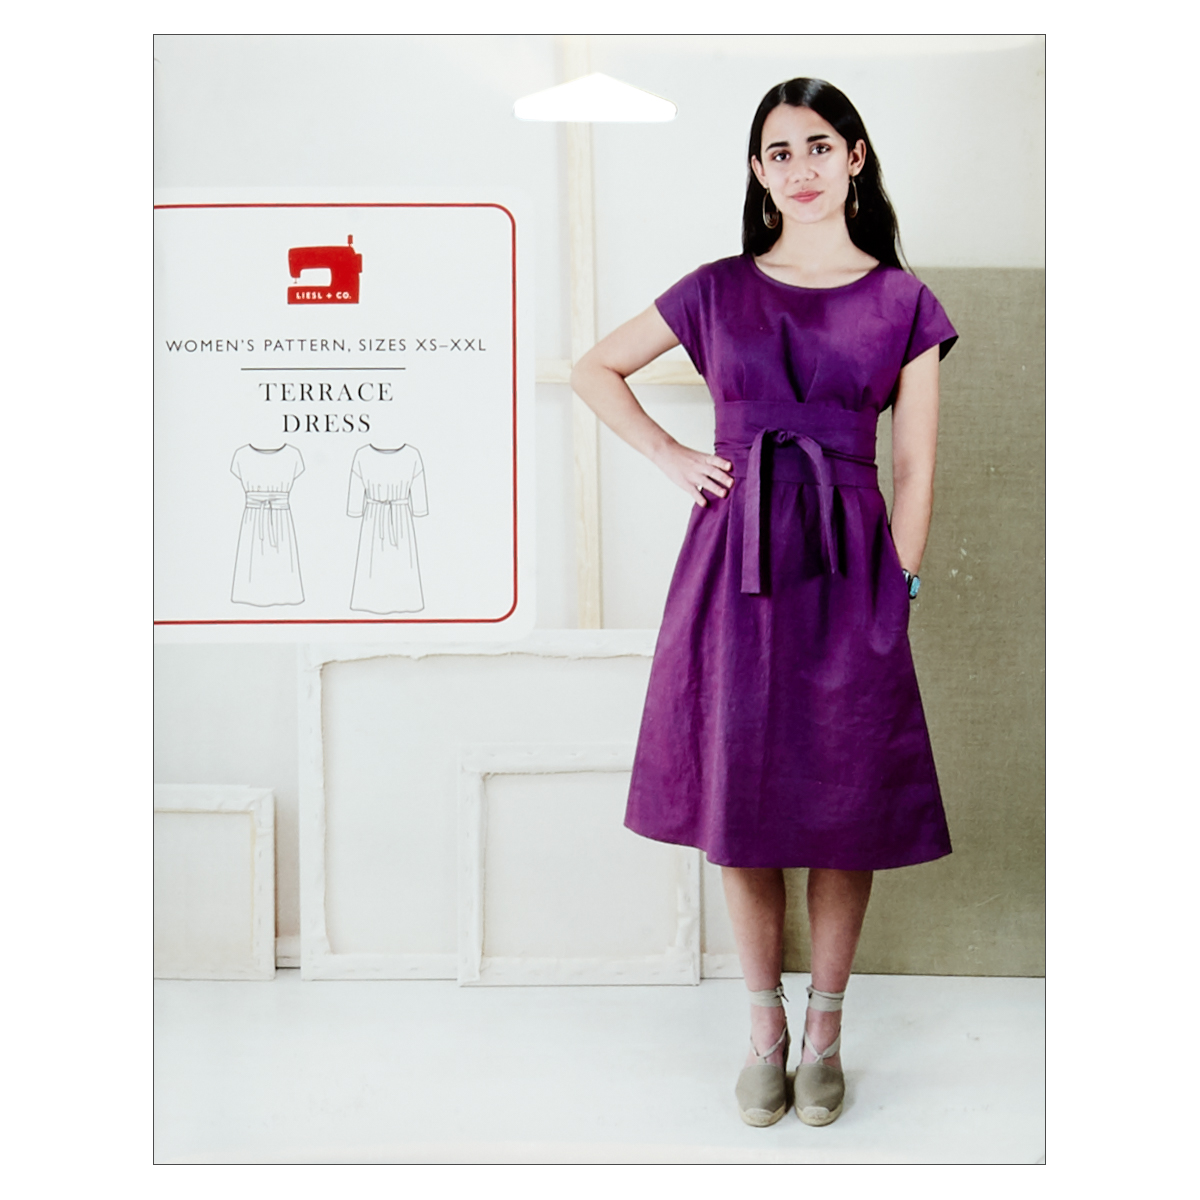 INOpets.com Anything for Pets Parents & Their Pets Liesl + Co. Terrace Dress Sewing Pattern